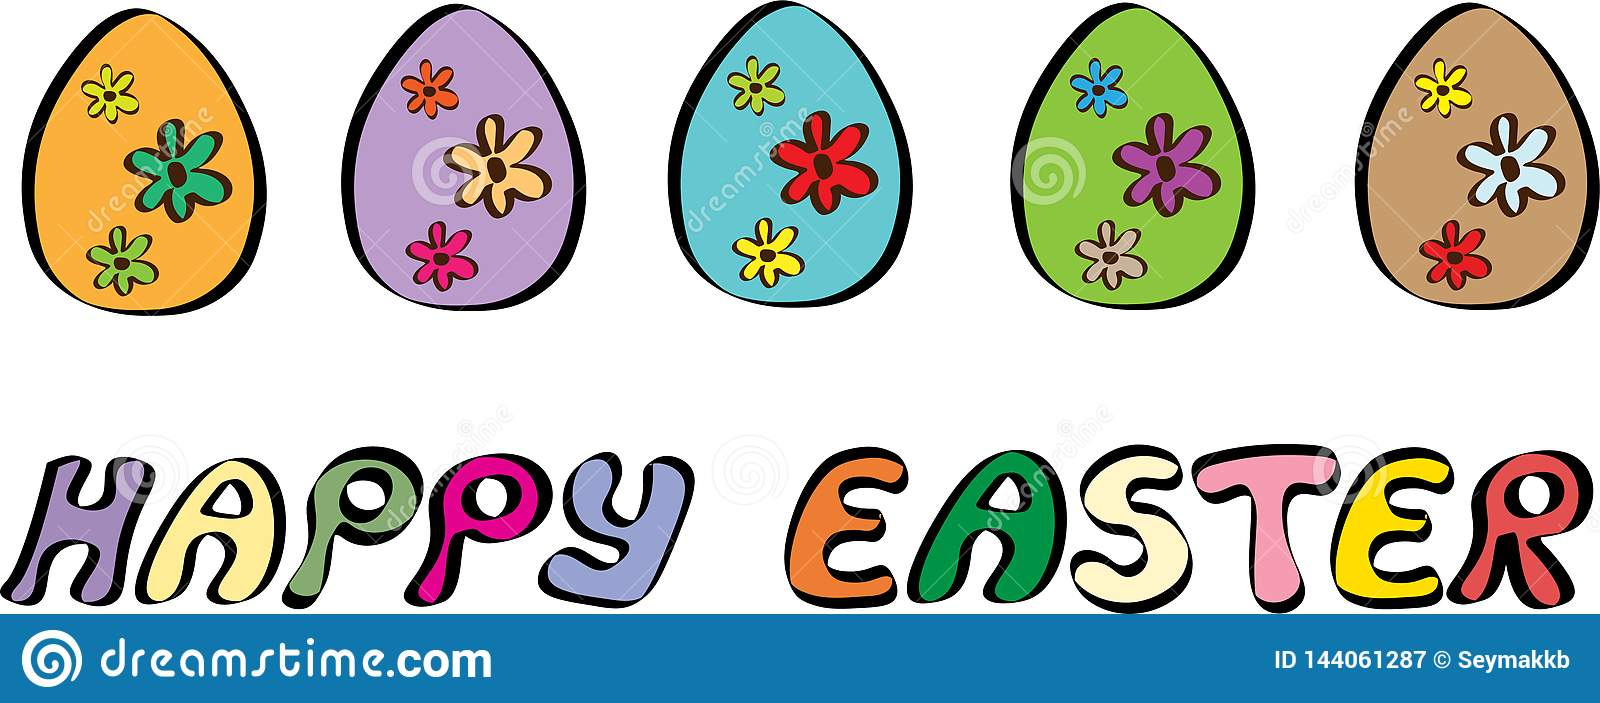 Happy Easter Banner With Five Eggs Illustration